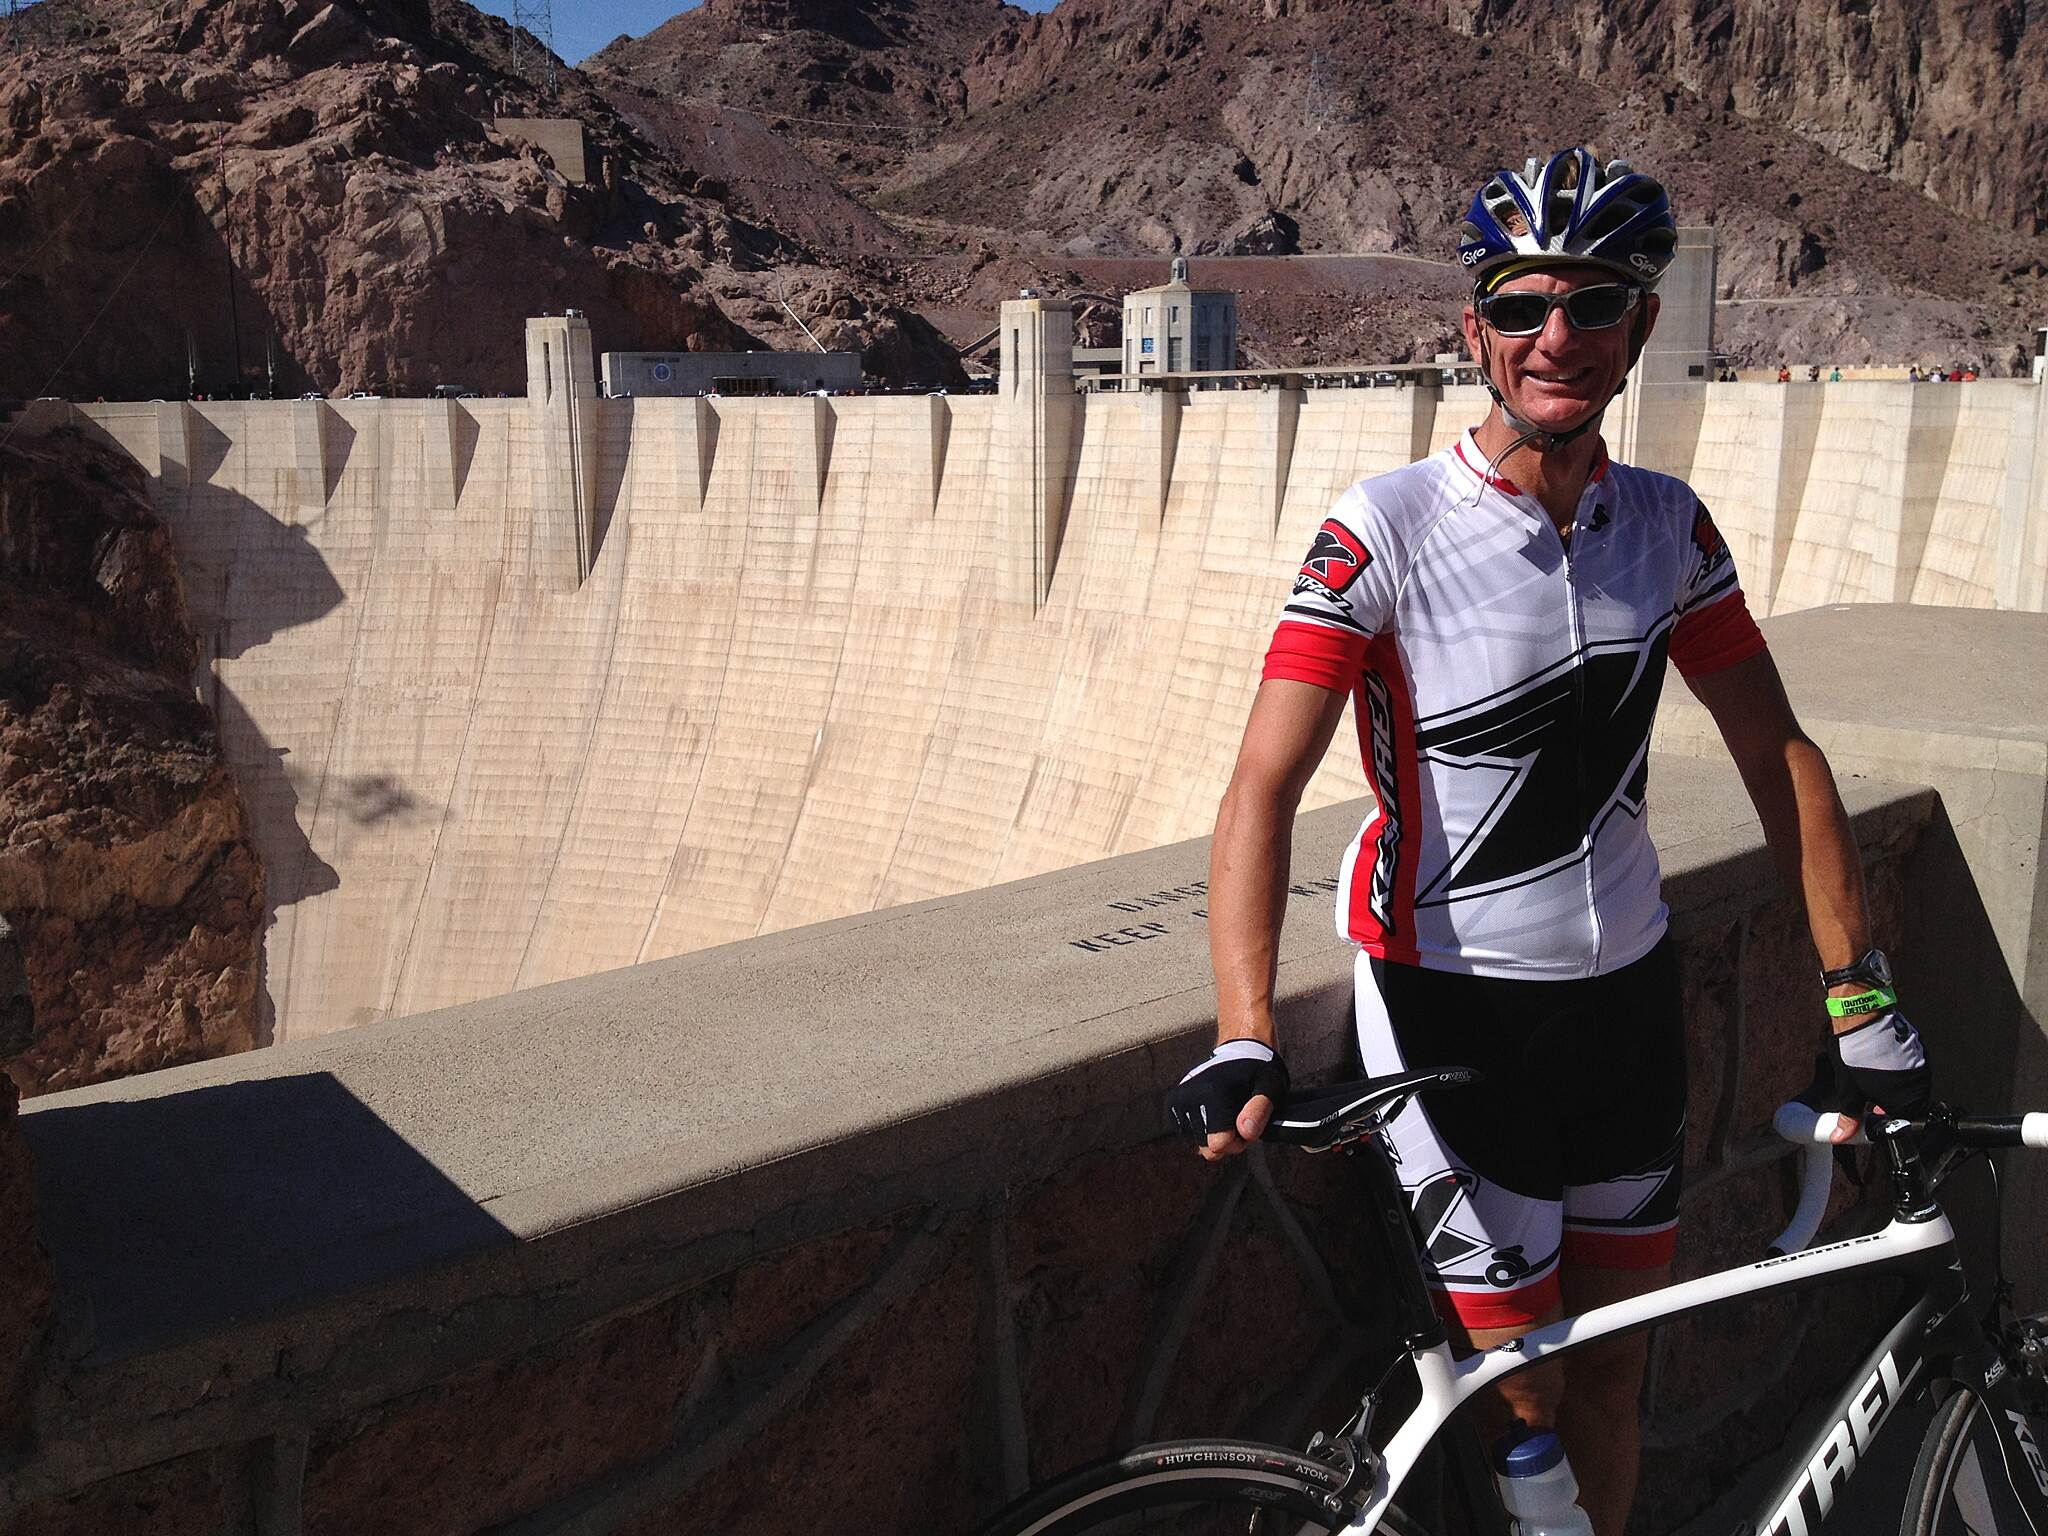 Historic Railroad Trail Steve ready to ride Hoover Dam and Tunnel Trail Interbike Bike Demo Day 1, Steve and I get ready to try out the new Tunnel Trail. The recently built bridge over the Colorado has nicely diverted almost all traffic from Hoover Dam. I rode here a few years earlier and it was completely mobbed with cars.